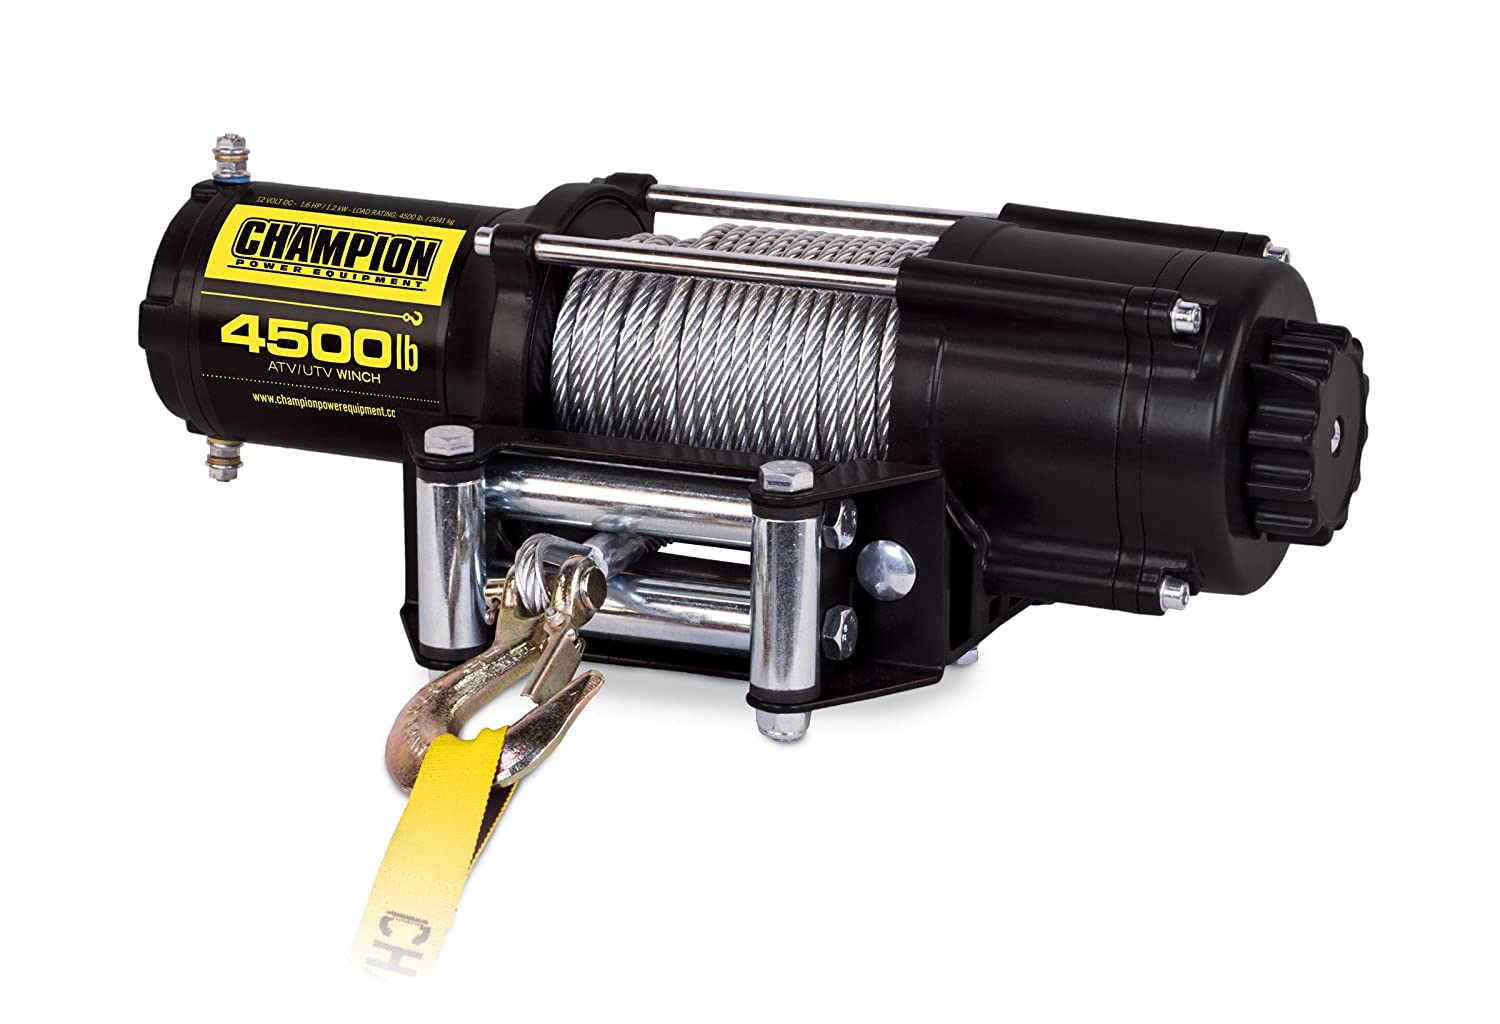 Champion 4500-lb. ATV/UTV Wireless Winch Kit